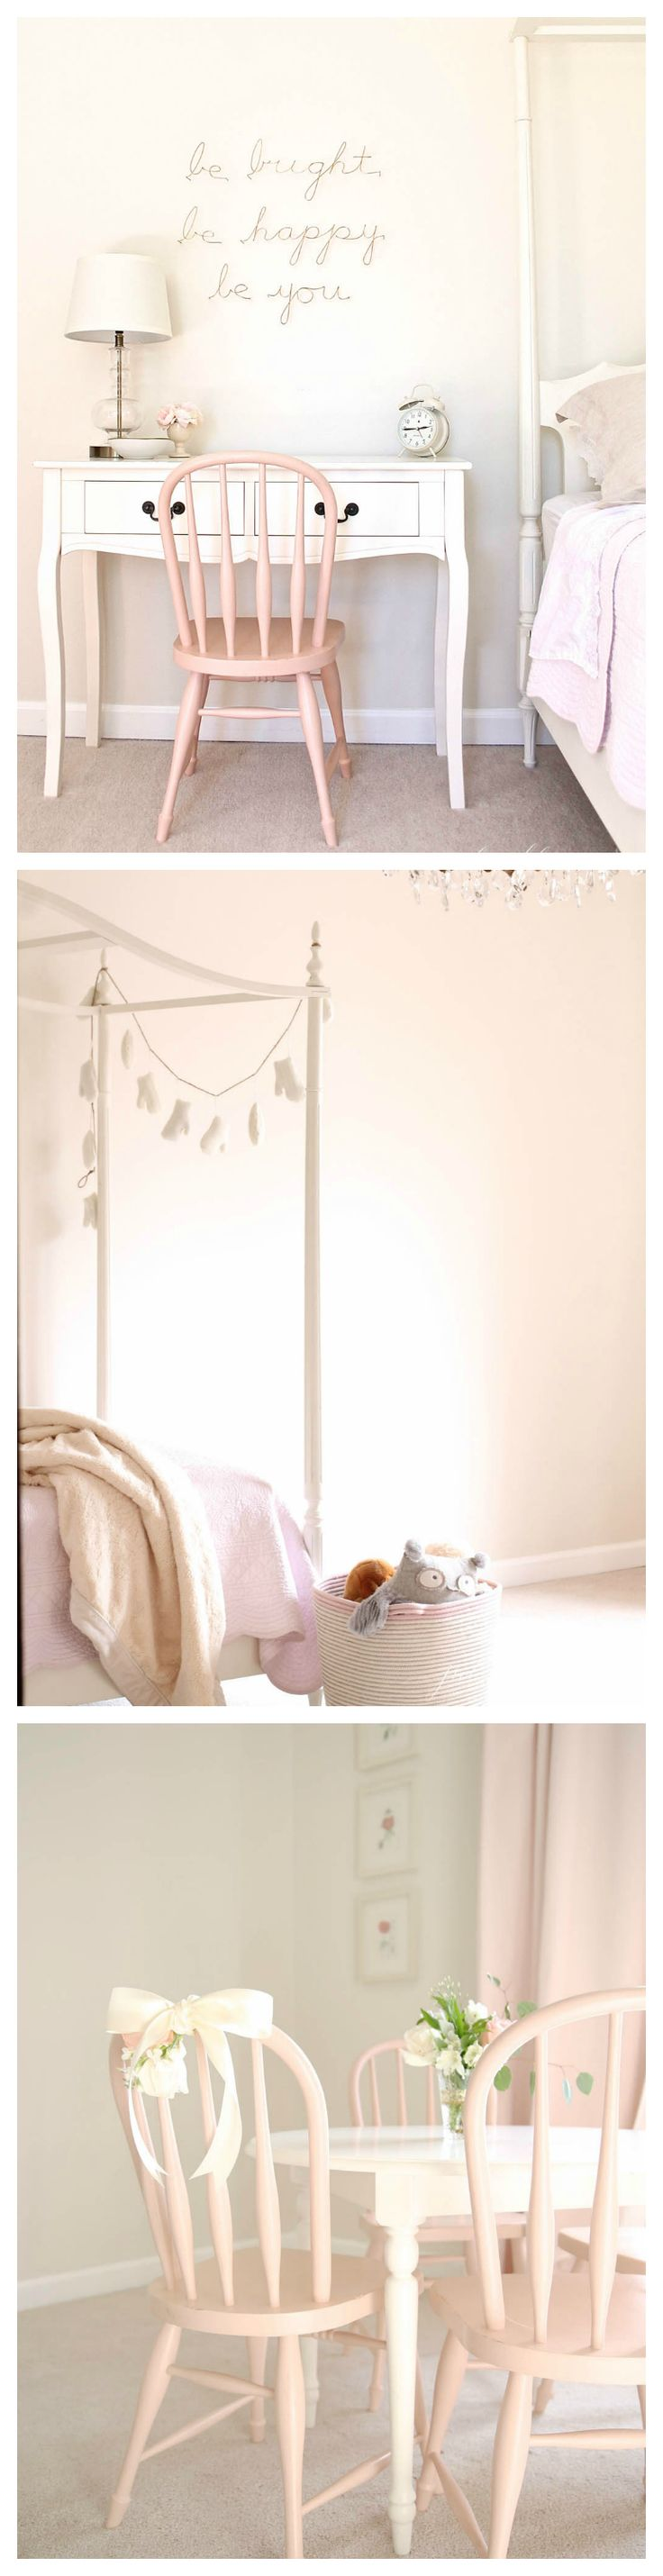 Decorating Little Girls Room Best 25 Little Girl Bedrooms Ideas On Pinterest  Kids Bedroom